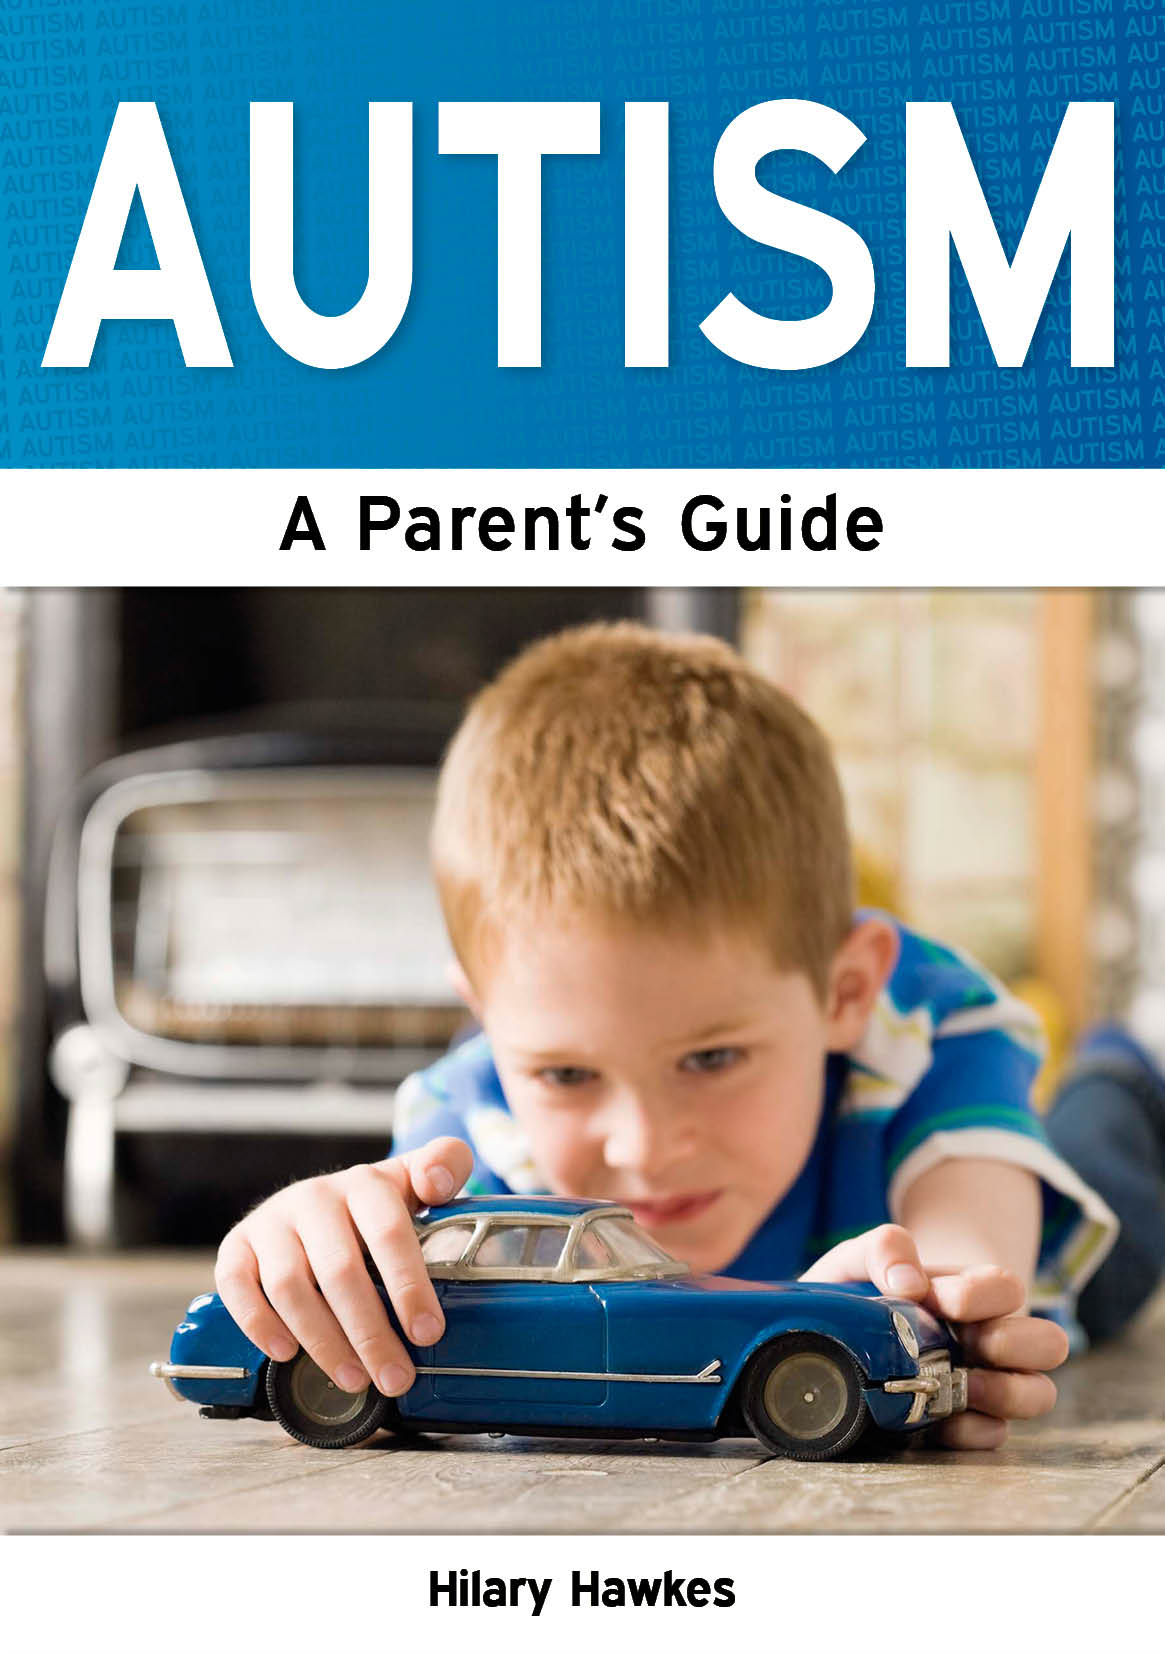 Autism: A Parent's Guide